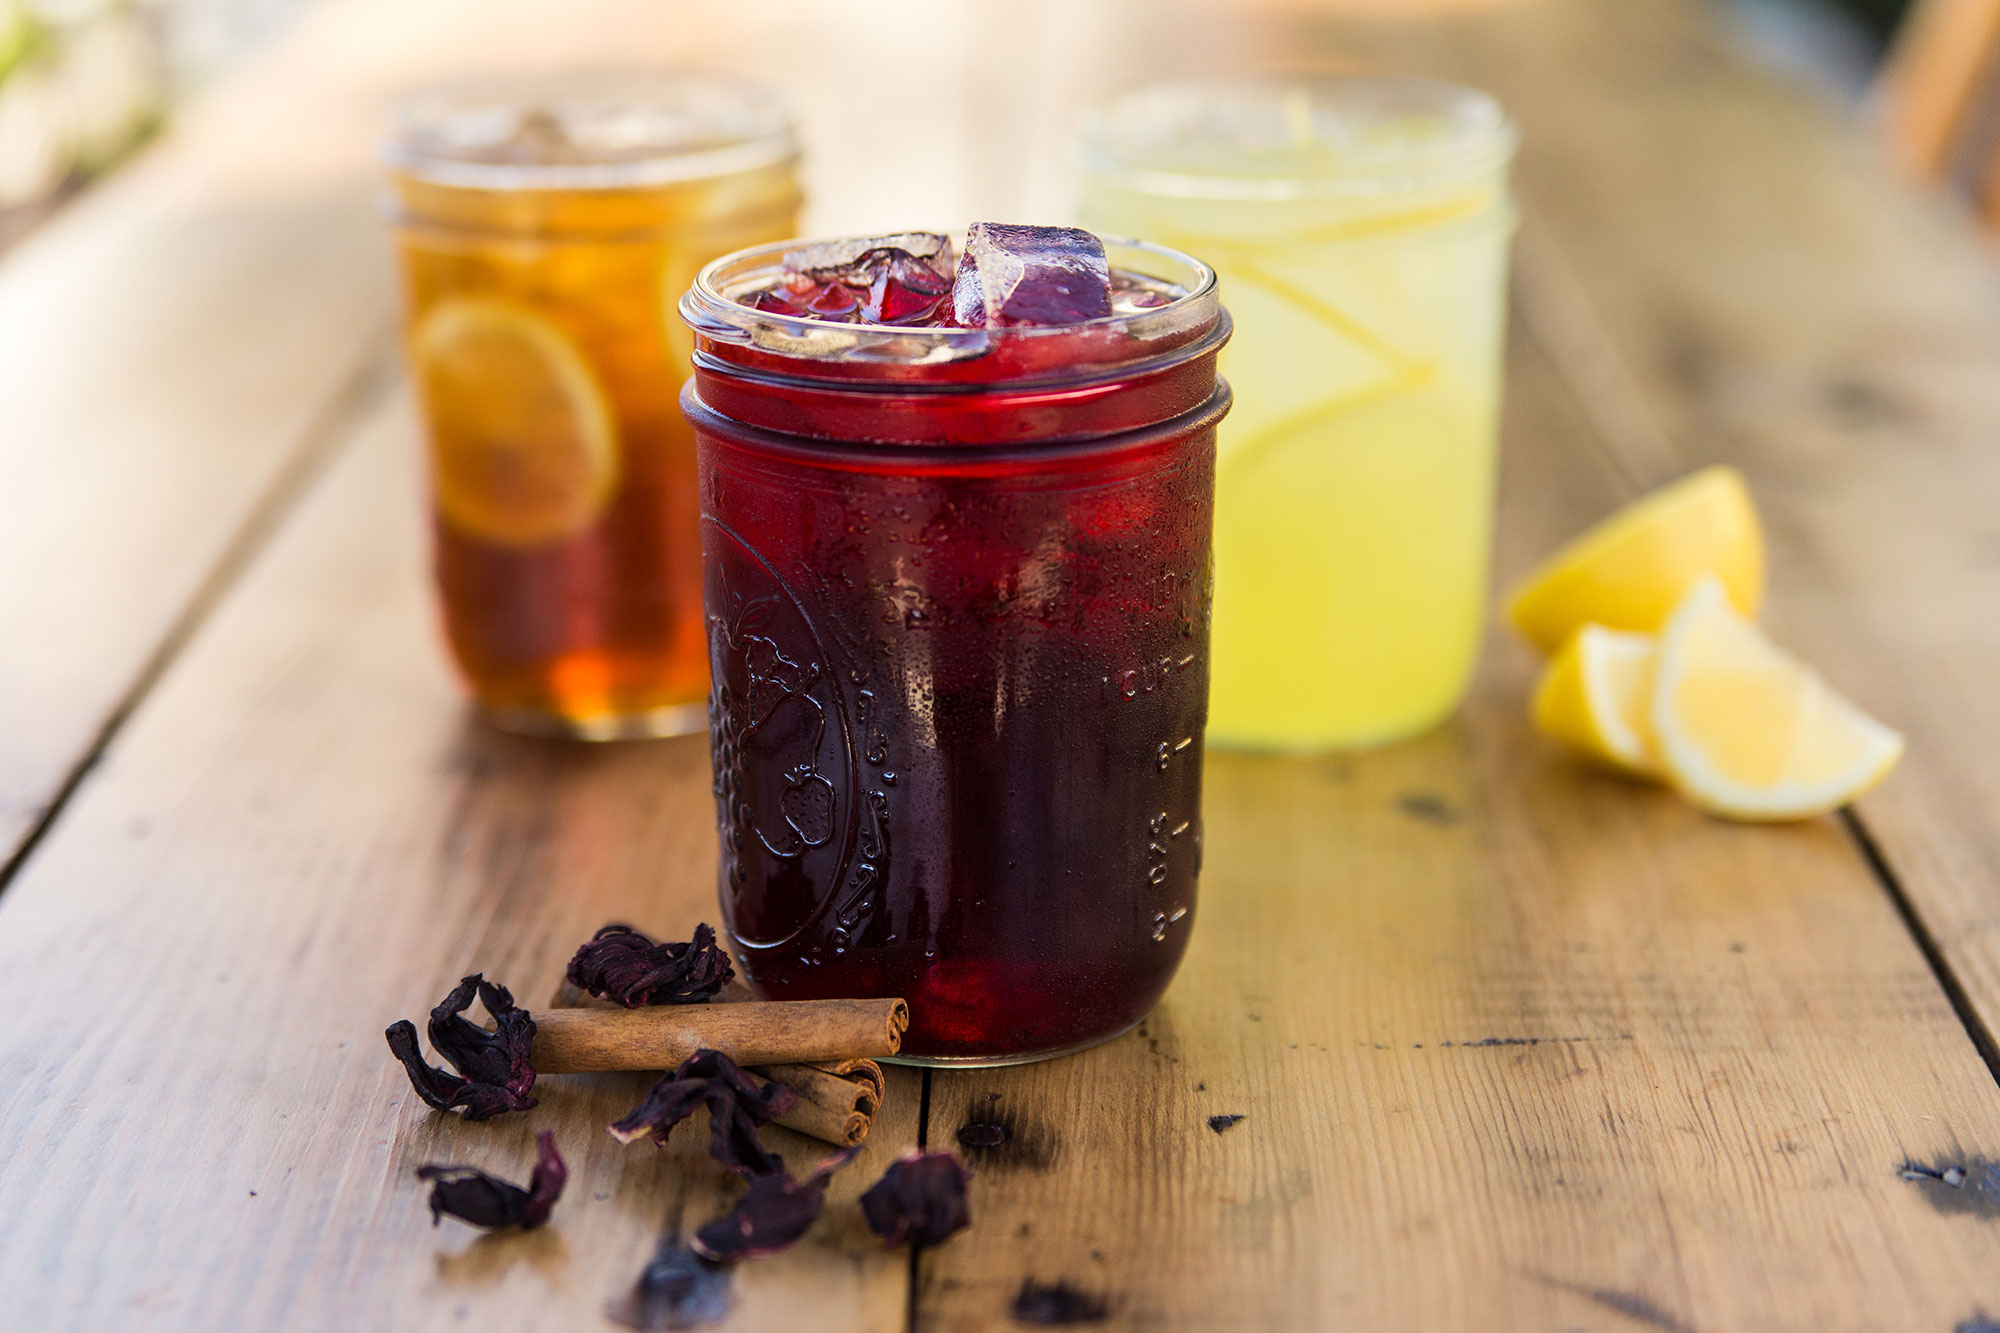 Iced tea, sorrel drink and lemonade